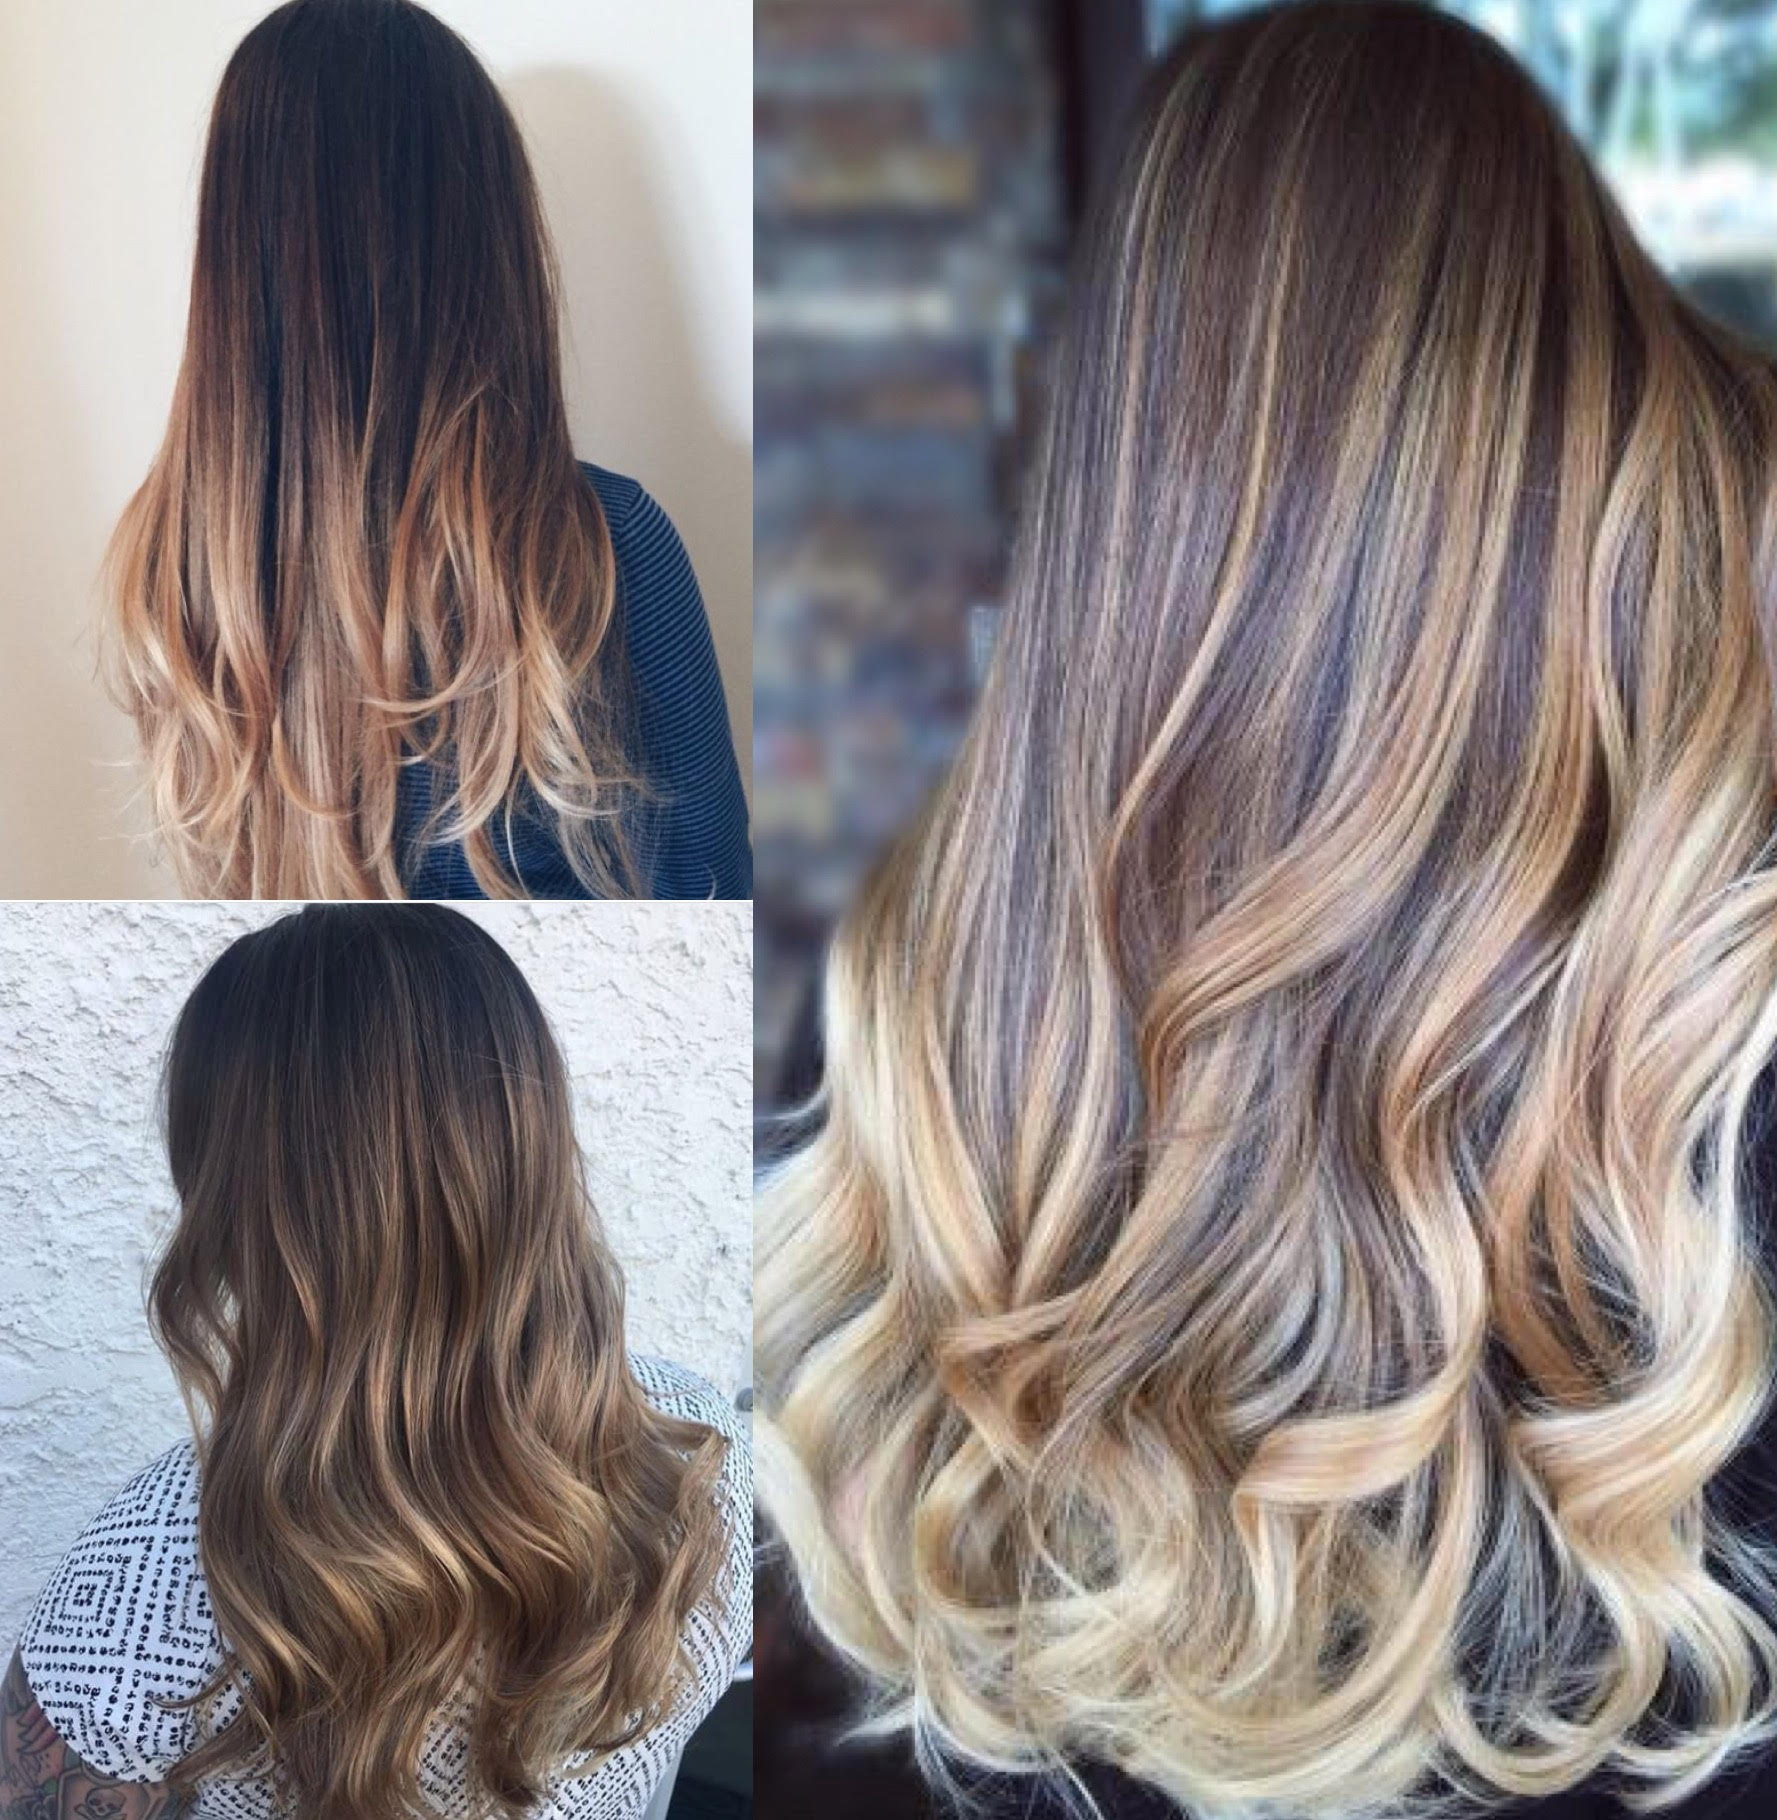 The Differences Between Color Melting Balayage And Ombre